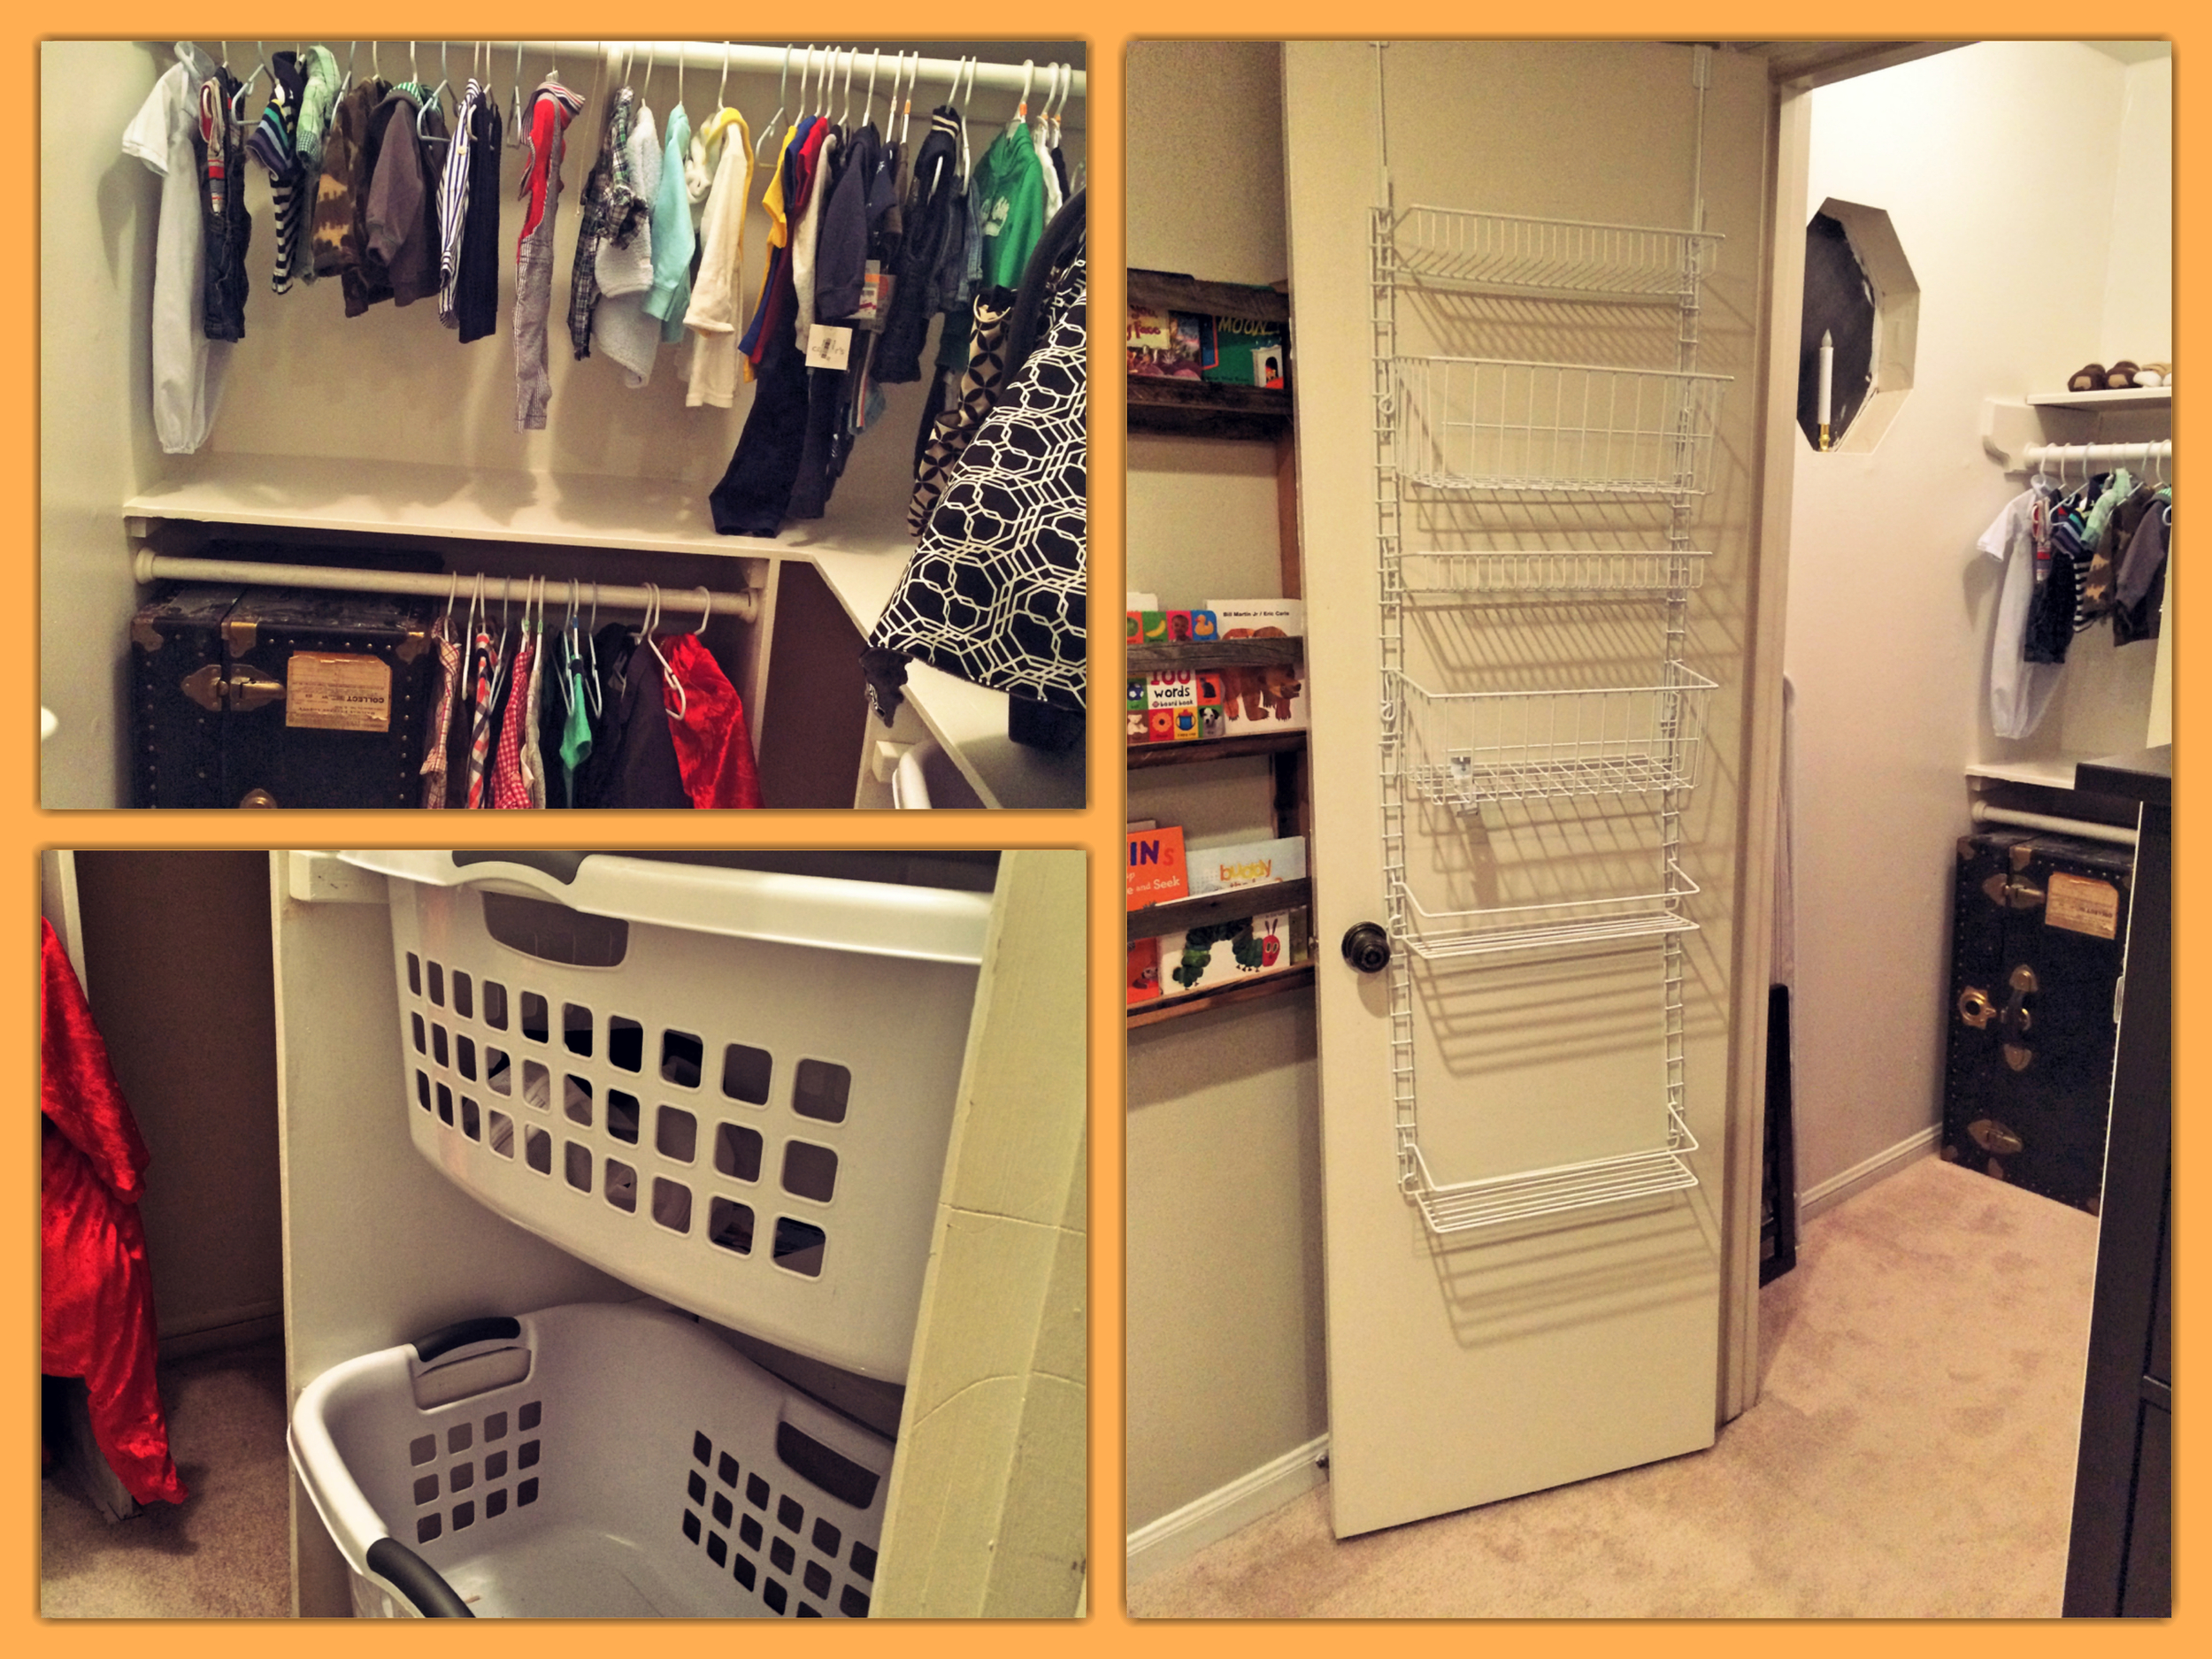 The closet is still a work in progress, but I am happy with what we've set up so far, as I think it will work out nicely and grow with baby. I love the little niche Jon built for laundry baskets and that there's plenty of room for storage.